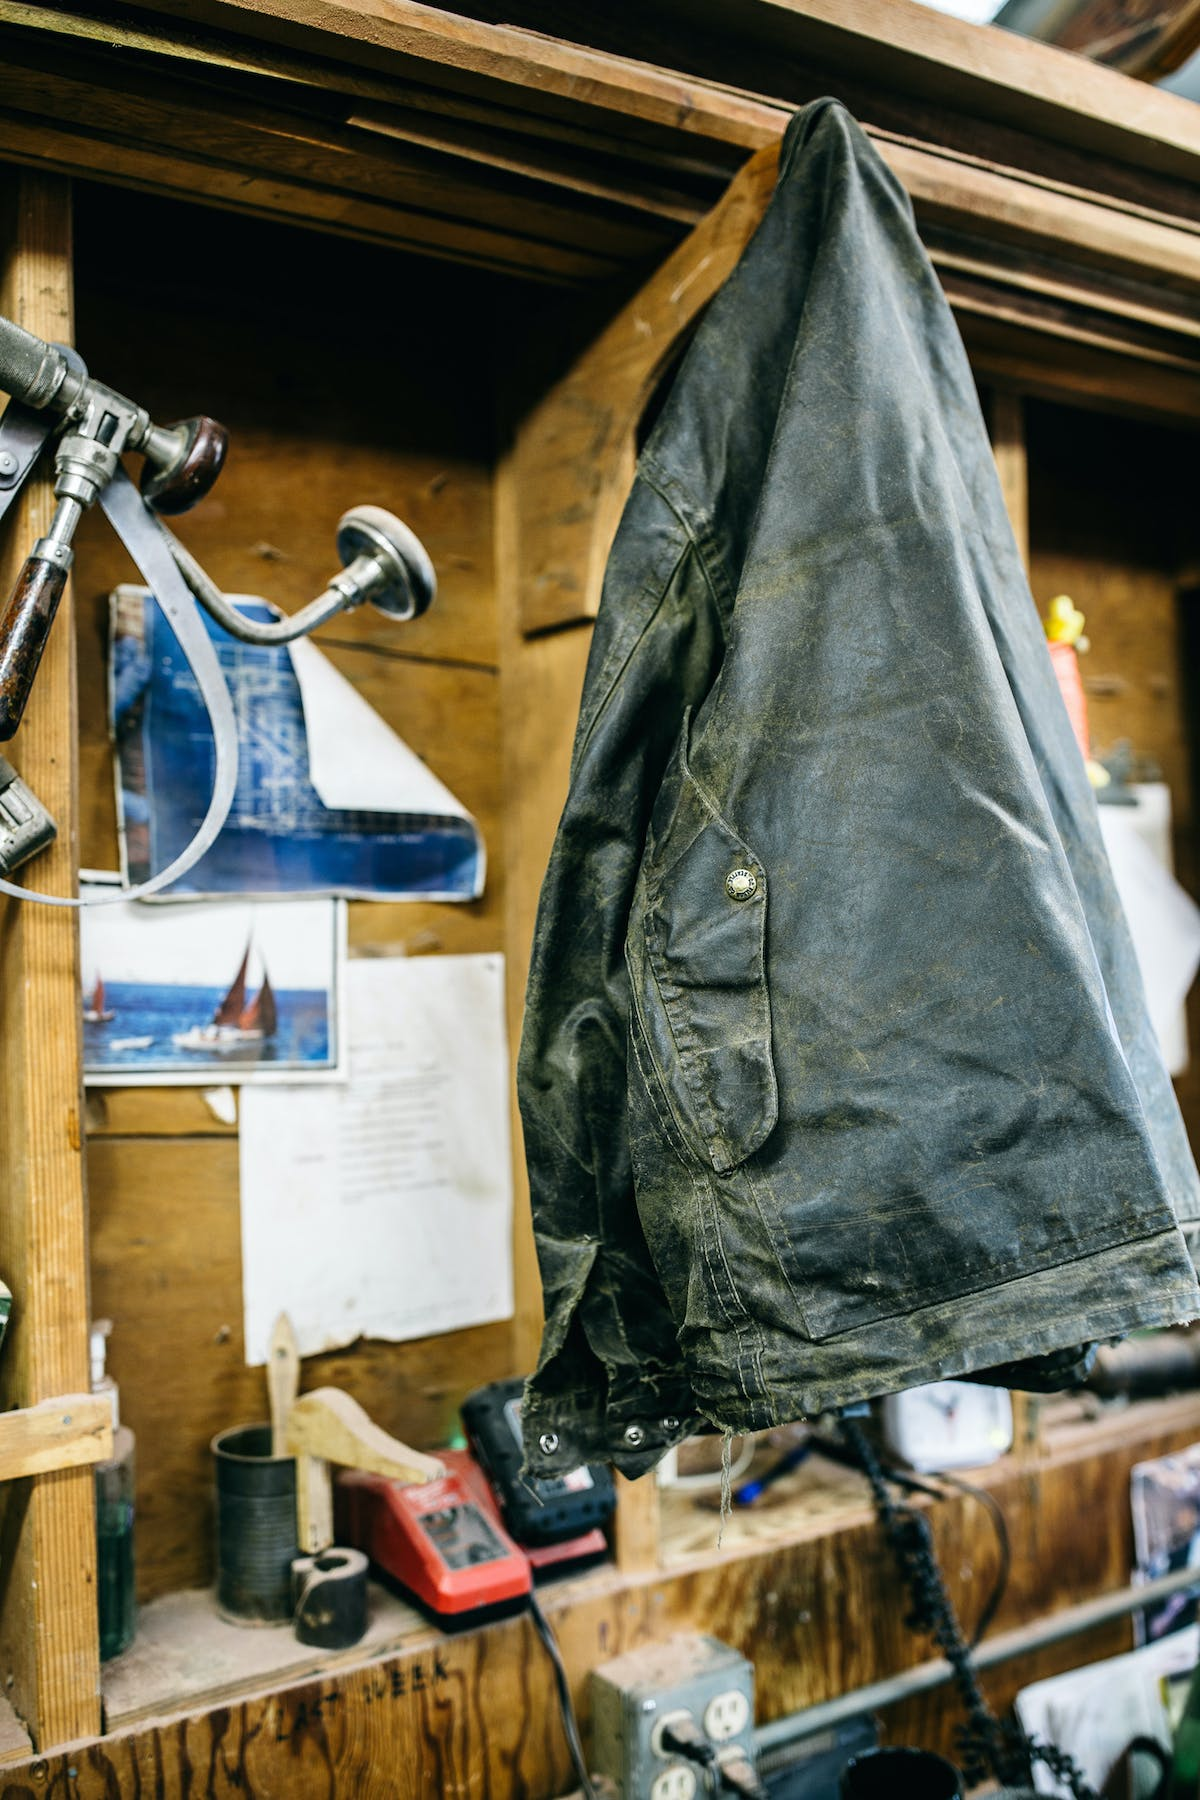 Filson Life - Haven Boatworks